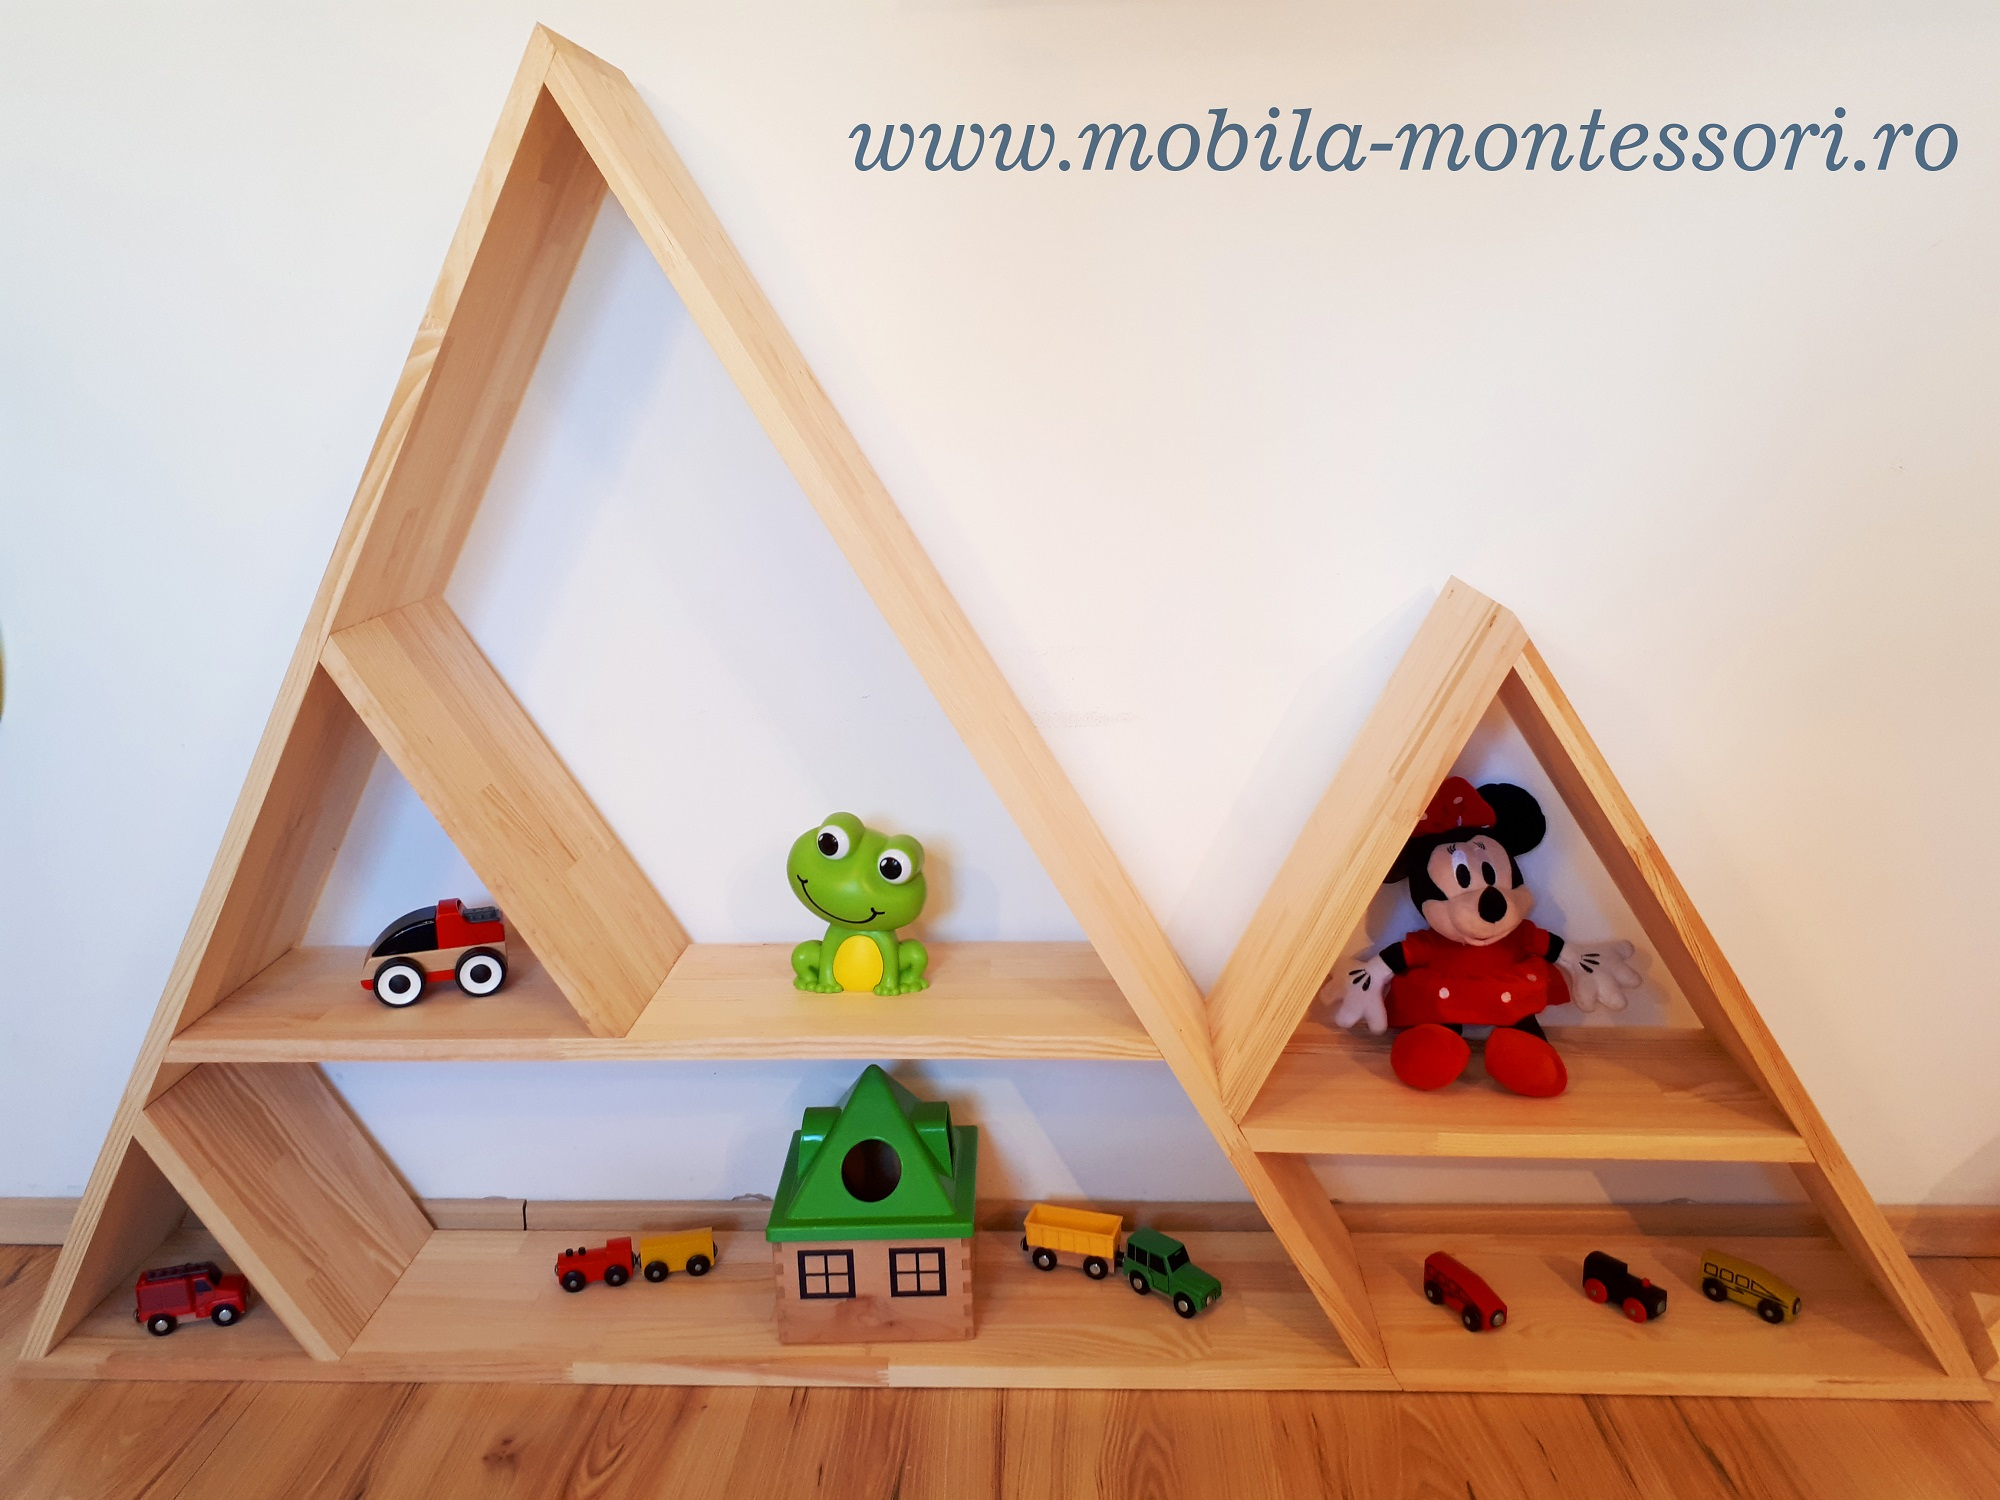 Amenajare Camera Montessori : Home mobila montessori